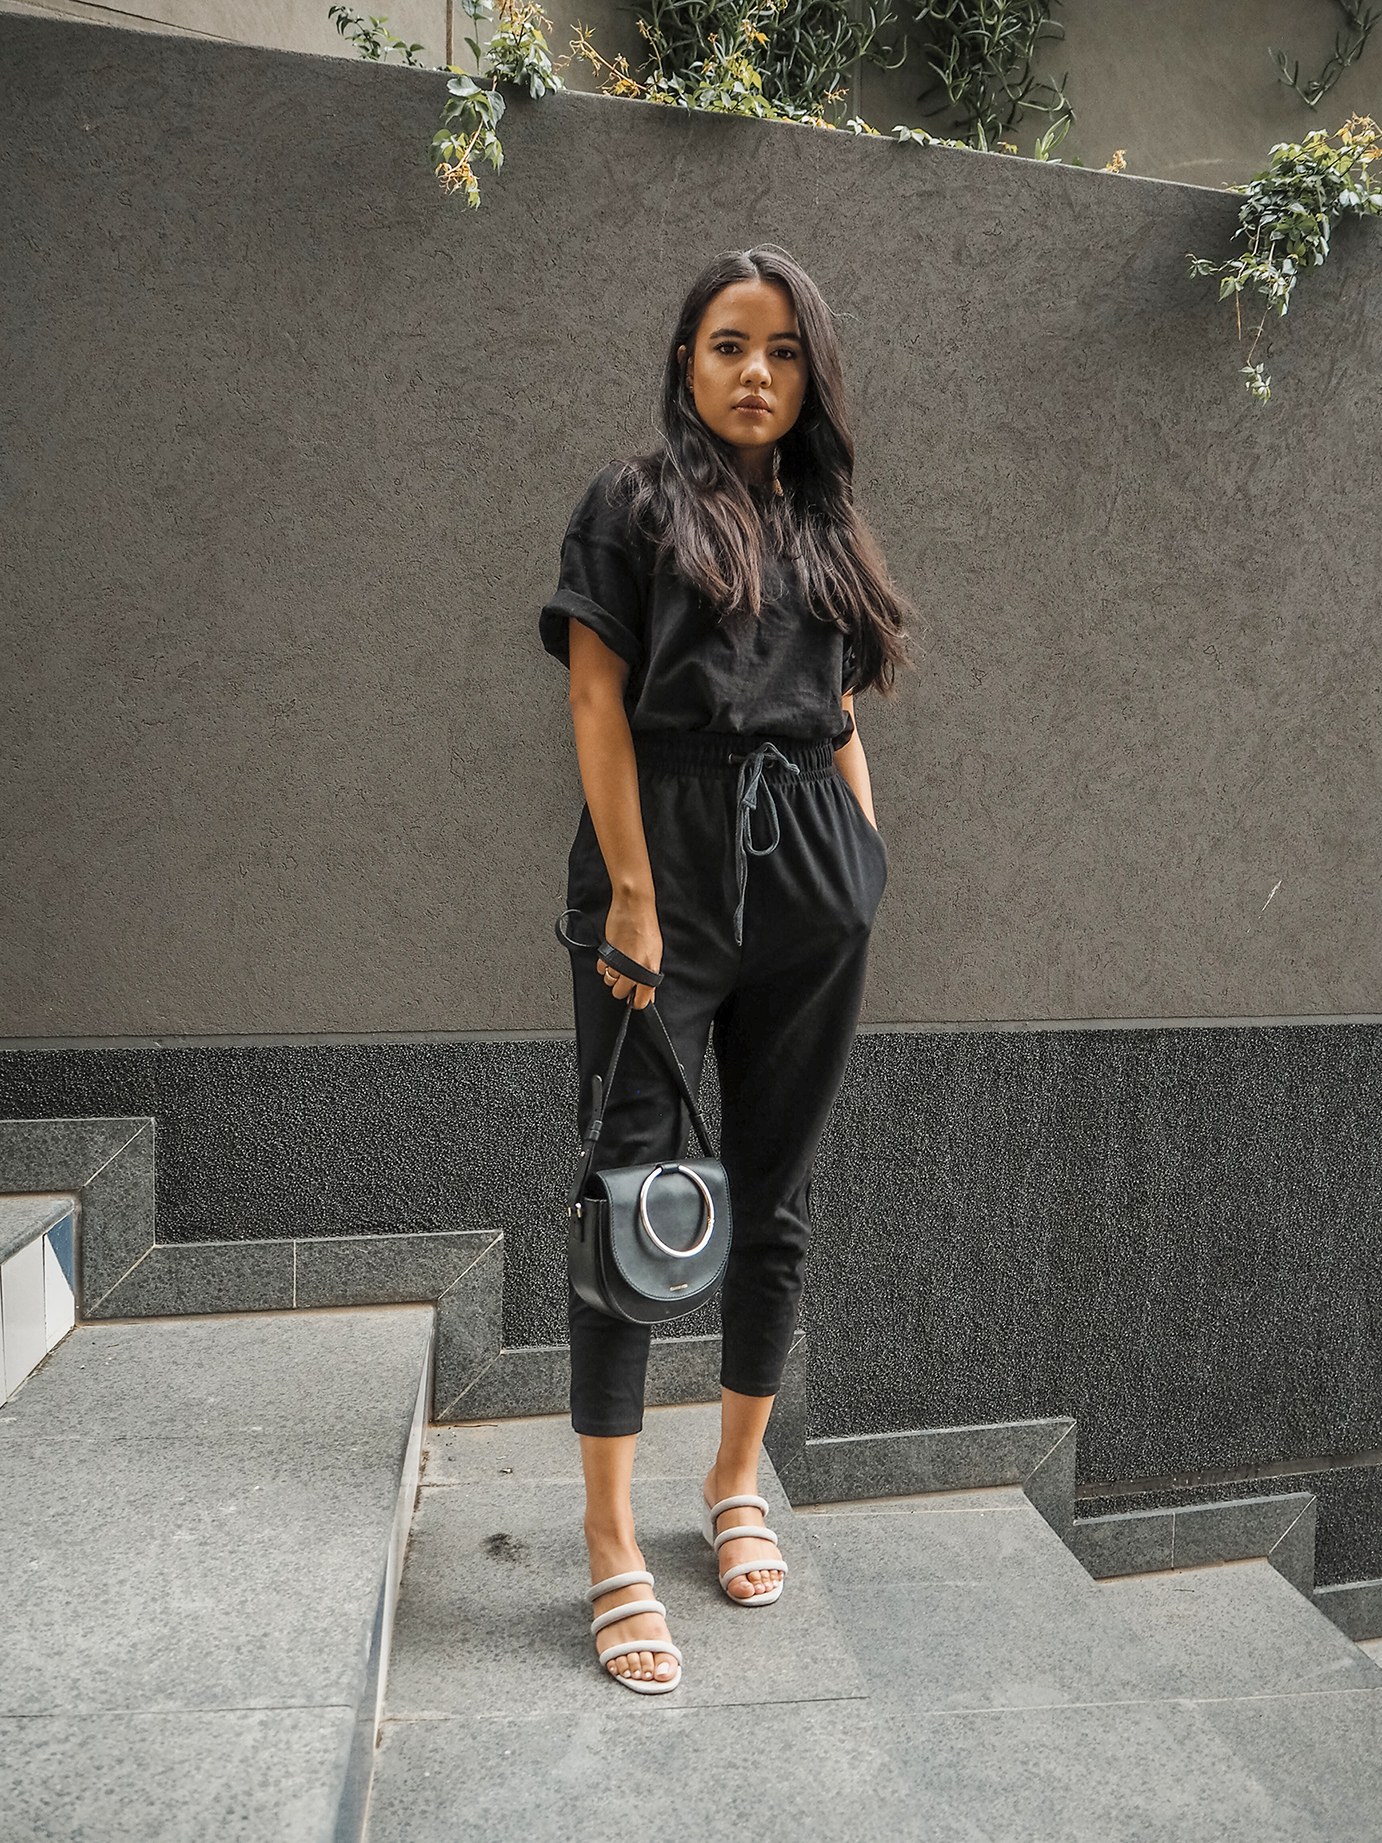 """Basic Black - Relaxed pieces are applicable for those """"I have nothing to wear!"""" days. I have lived in these drop crotch, athleisure trousers for almost 3 years, and they're still going strong. Dressed with a plain black t-shirt and a trendy leather bag, your outfit immediately takes form to luxury lounge wear.To lift the luxury lounge wear, pair with a body suit and cute heels, for those last minute night out plans.Shop similar items below."""